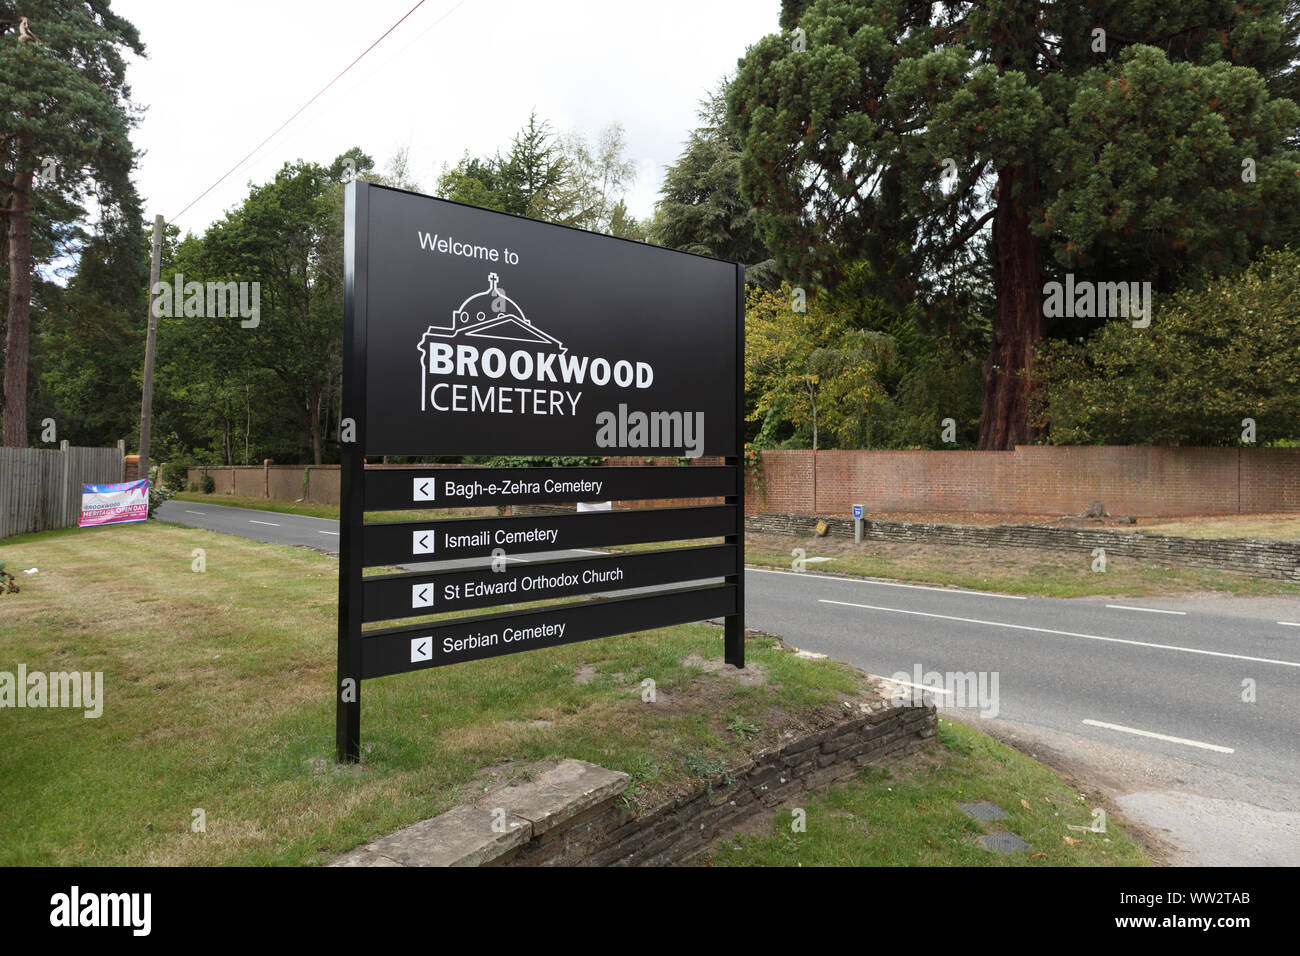 Roadside sign in Cemetery Pales outside Brookwood Cemetery (South), near Brookwood and Pirbright, Woking, Surrey, southeast England, UK Stock Photo